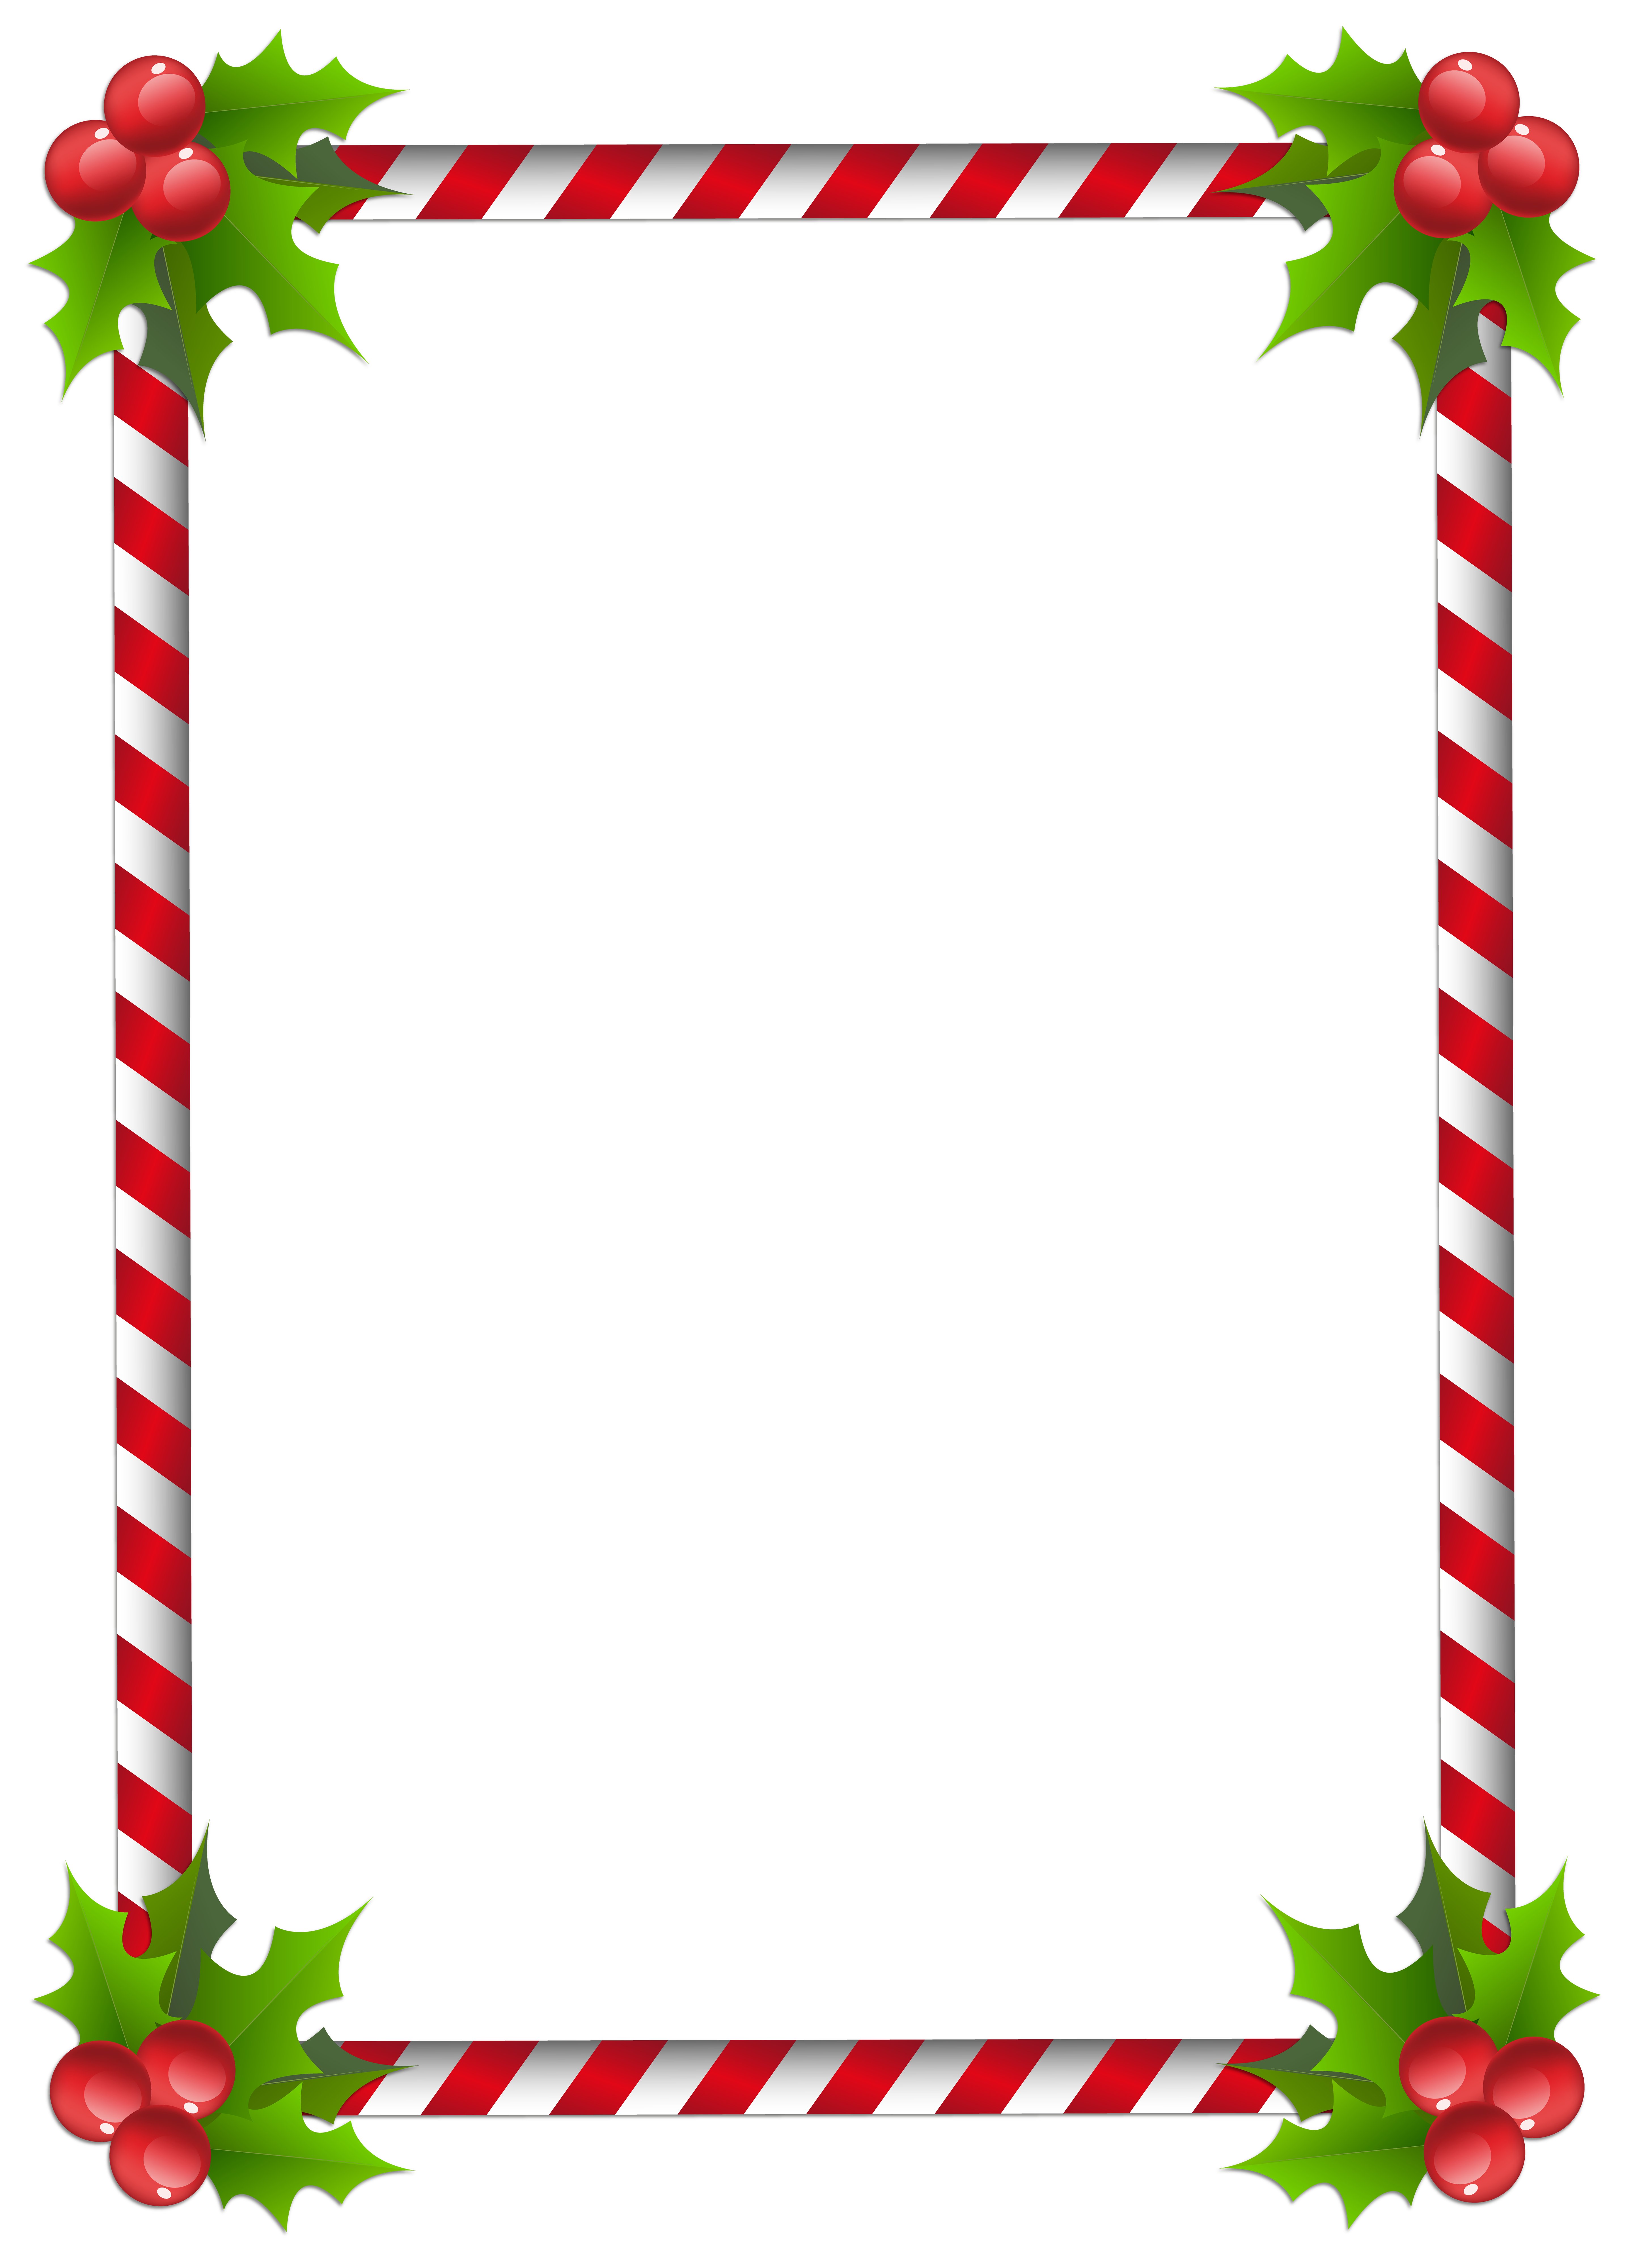 Christmas clipart templates free clipart free Pin by Nicole Yingling on 2017 ideas | Christmas border, Borders ... clipart free